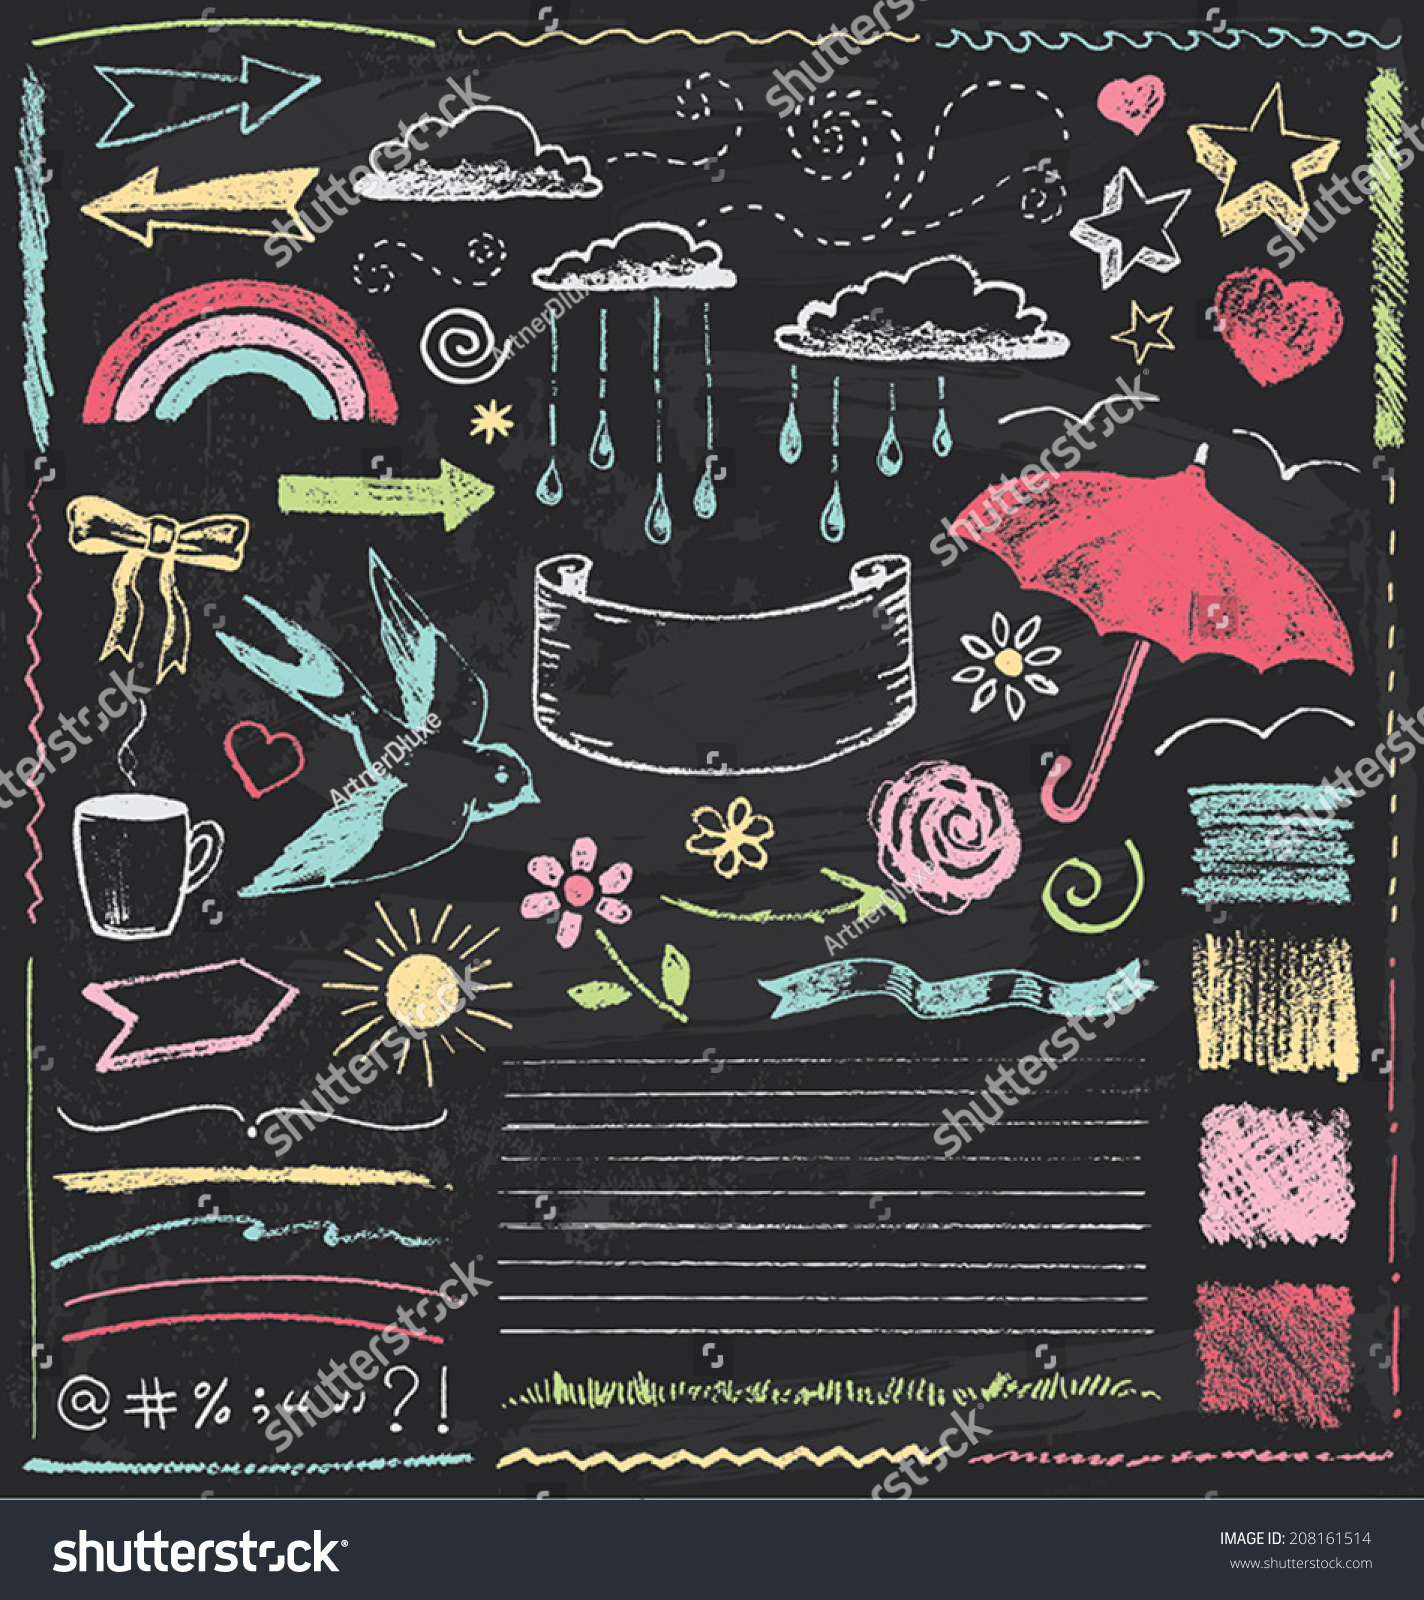 vintage chalkboard design elements hand drawn stock vector royalty